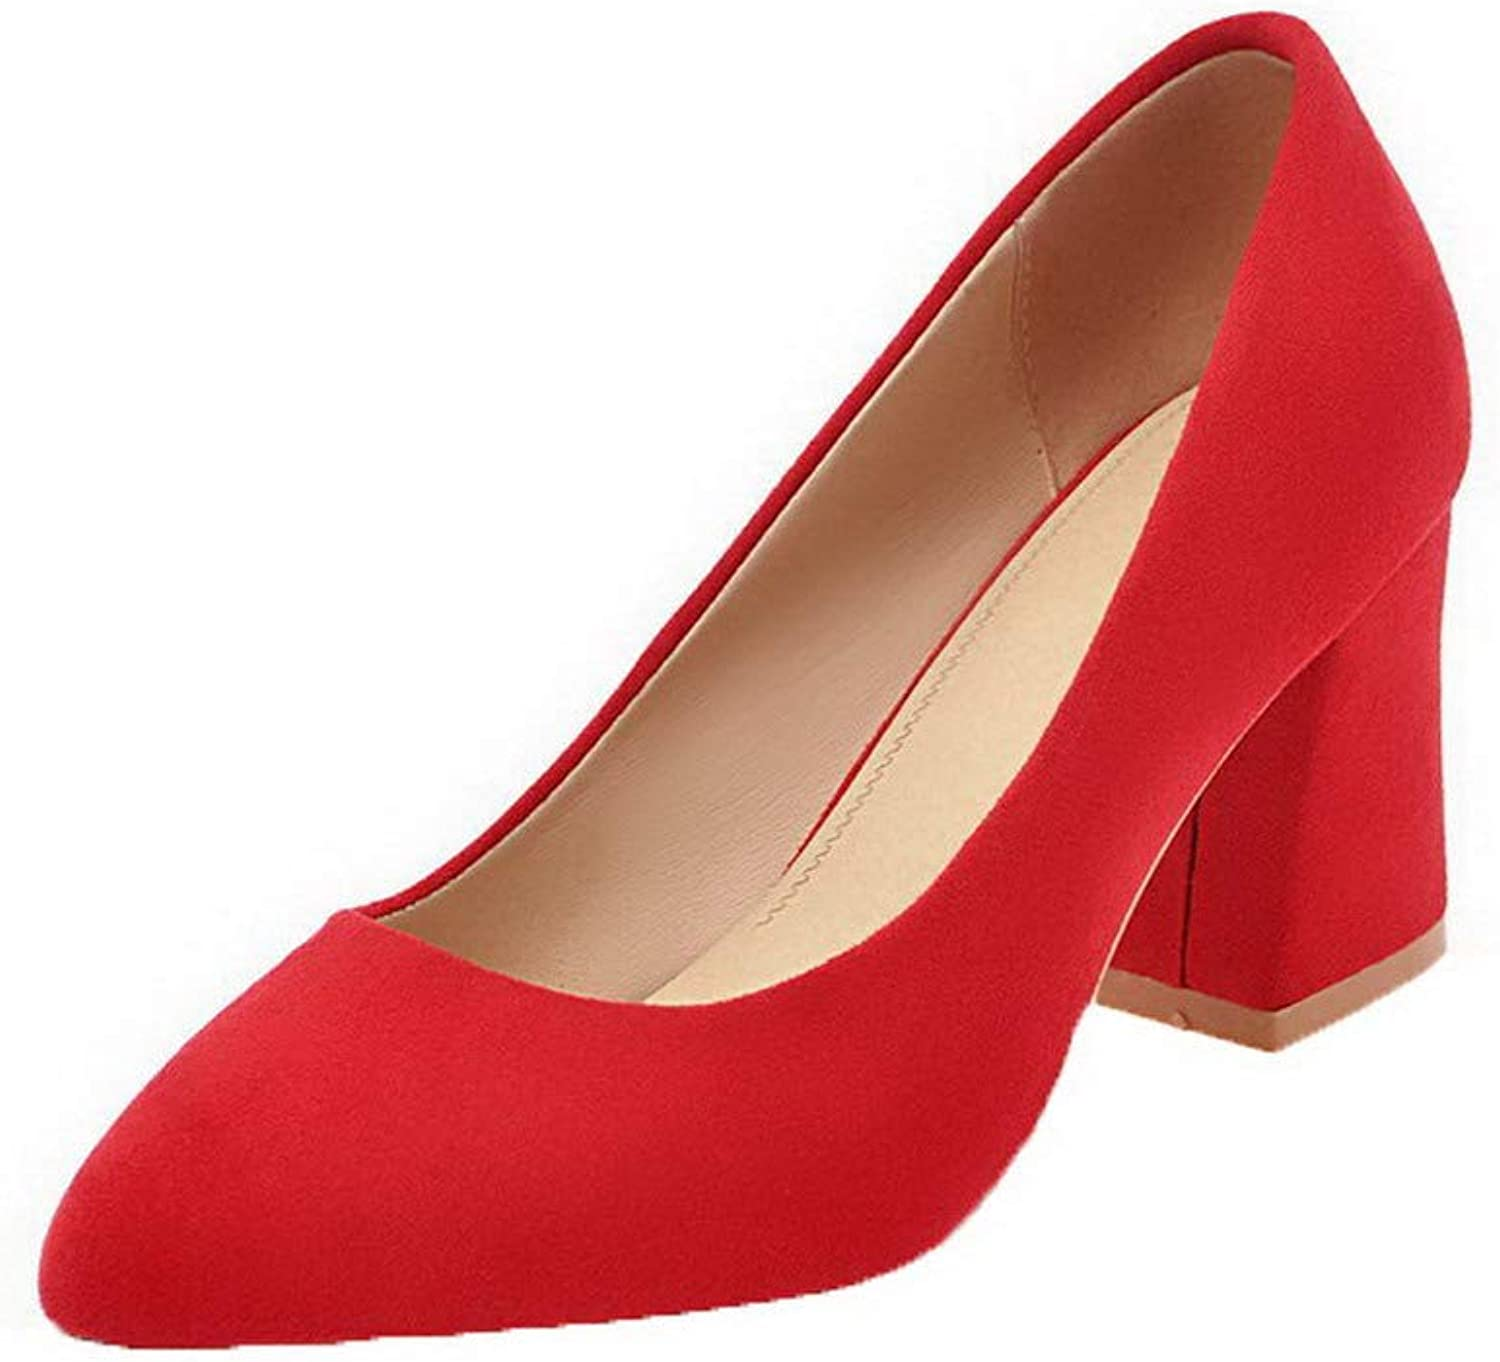 AllhqFashion Women's Blend Materials Round Closed Toe Solid Pull-On Pumps-shoes, FBUDD011119